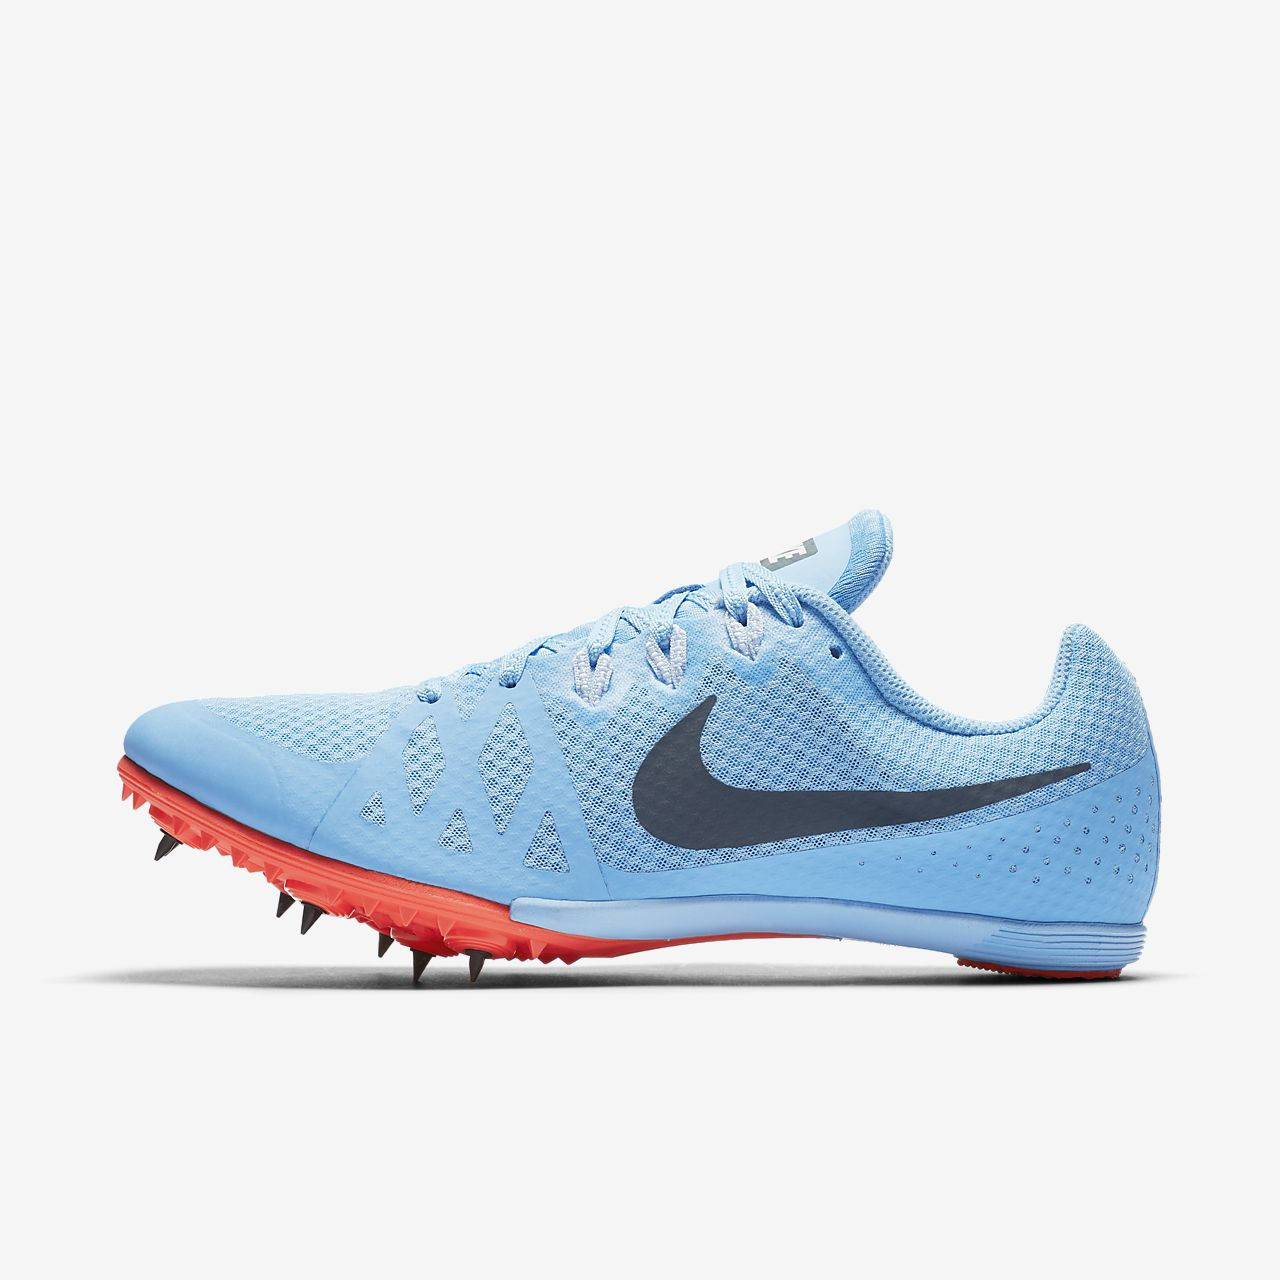 New Nike Zoom Rival M 8 Mens Multi Use Track Field Spikes Racing Shoes -